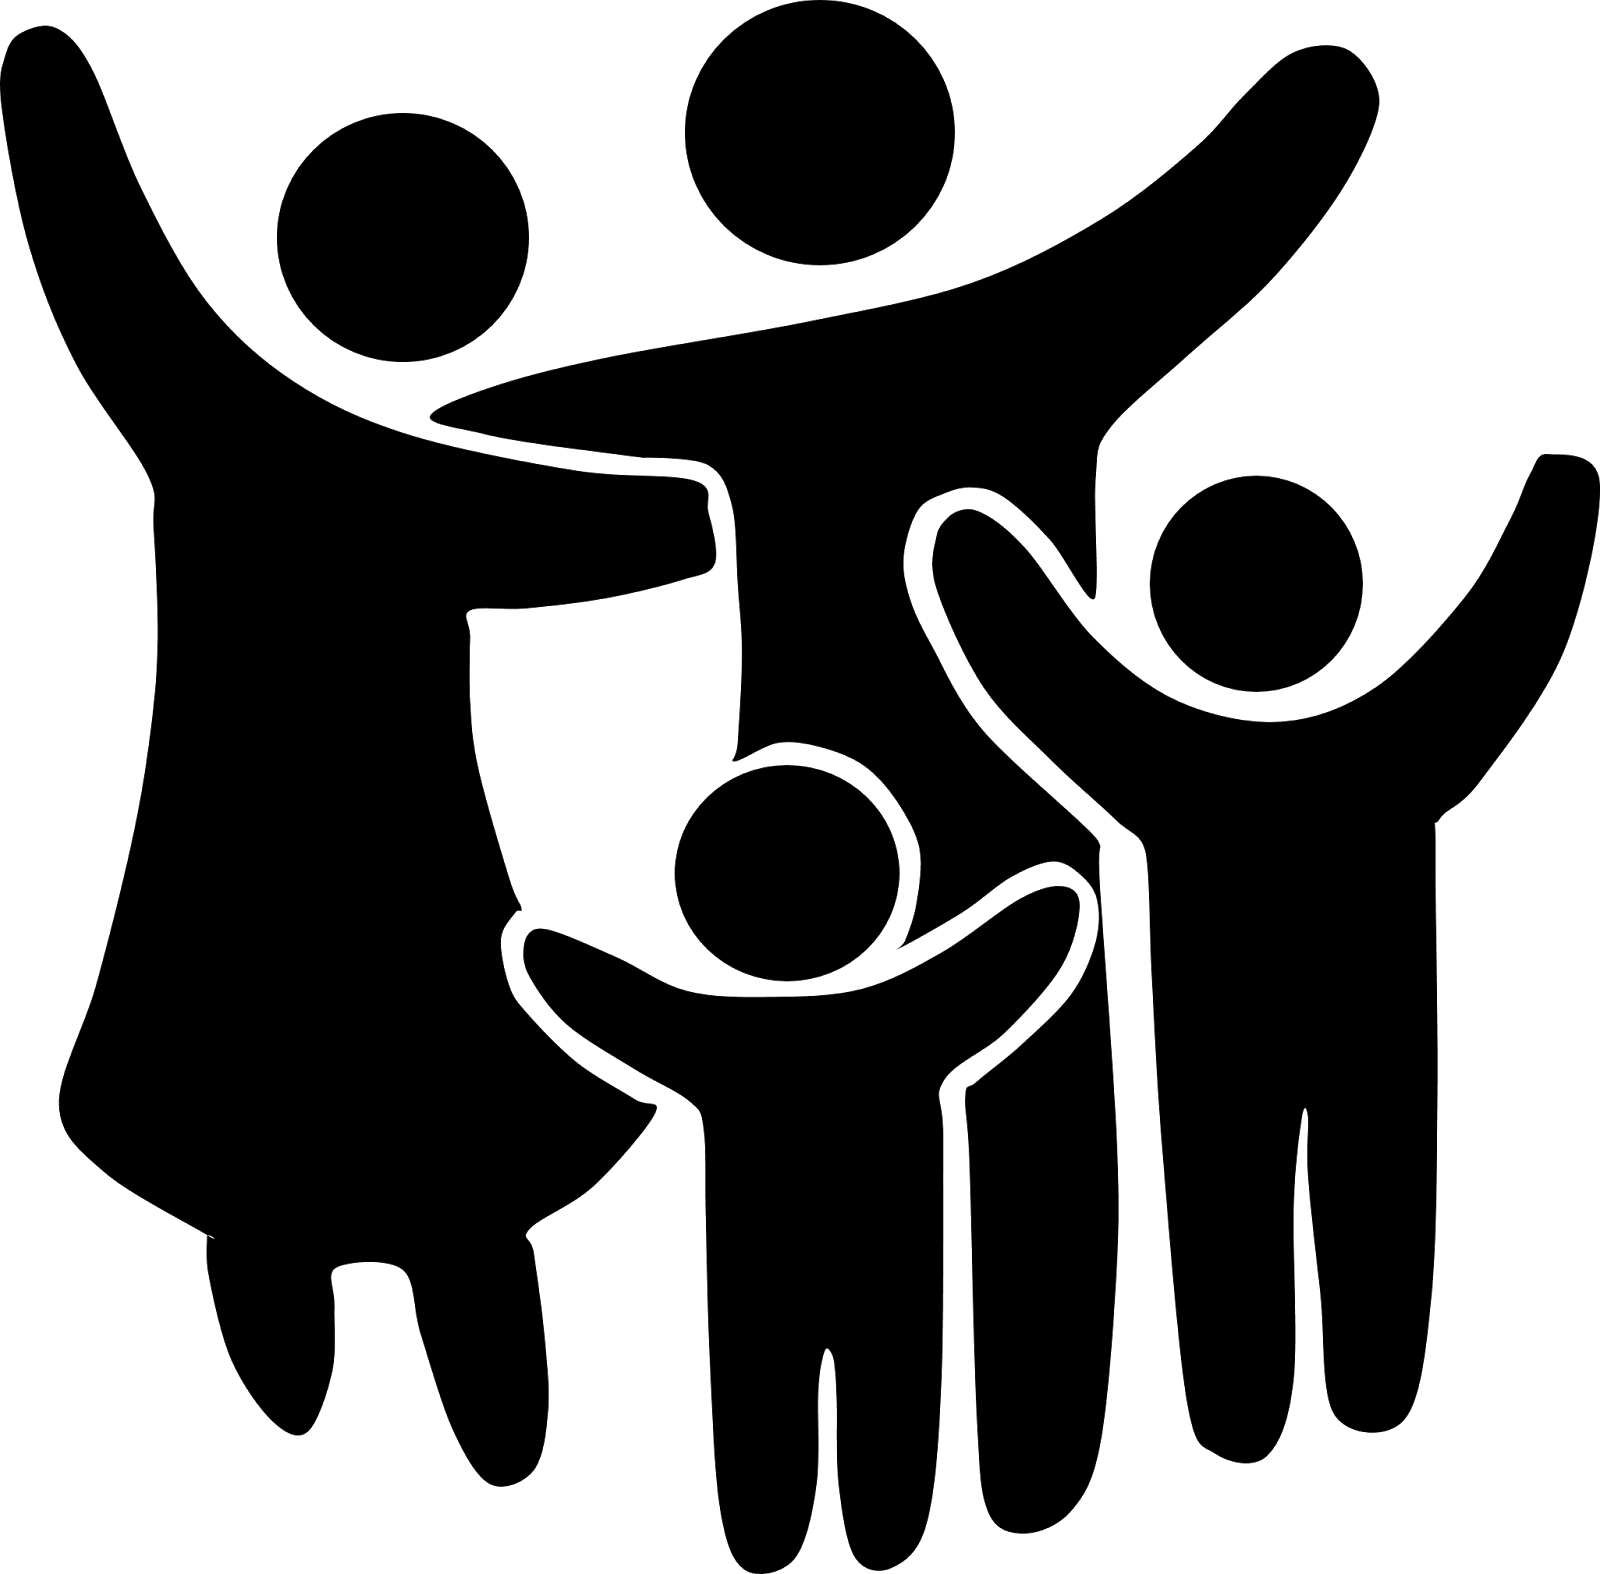 Family African American Transparent & PNG Clipart Pictures Free.